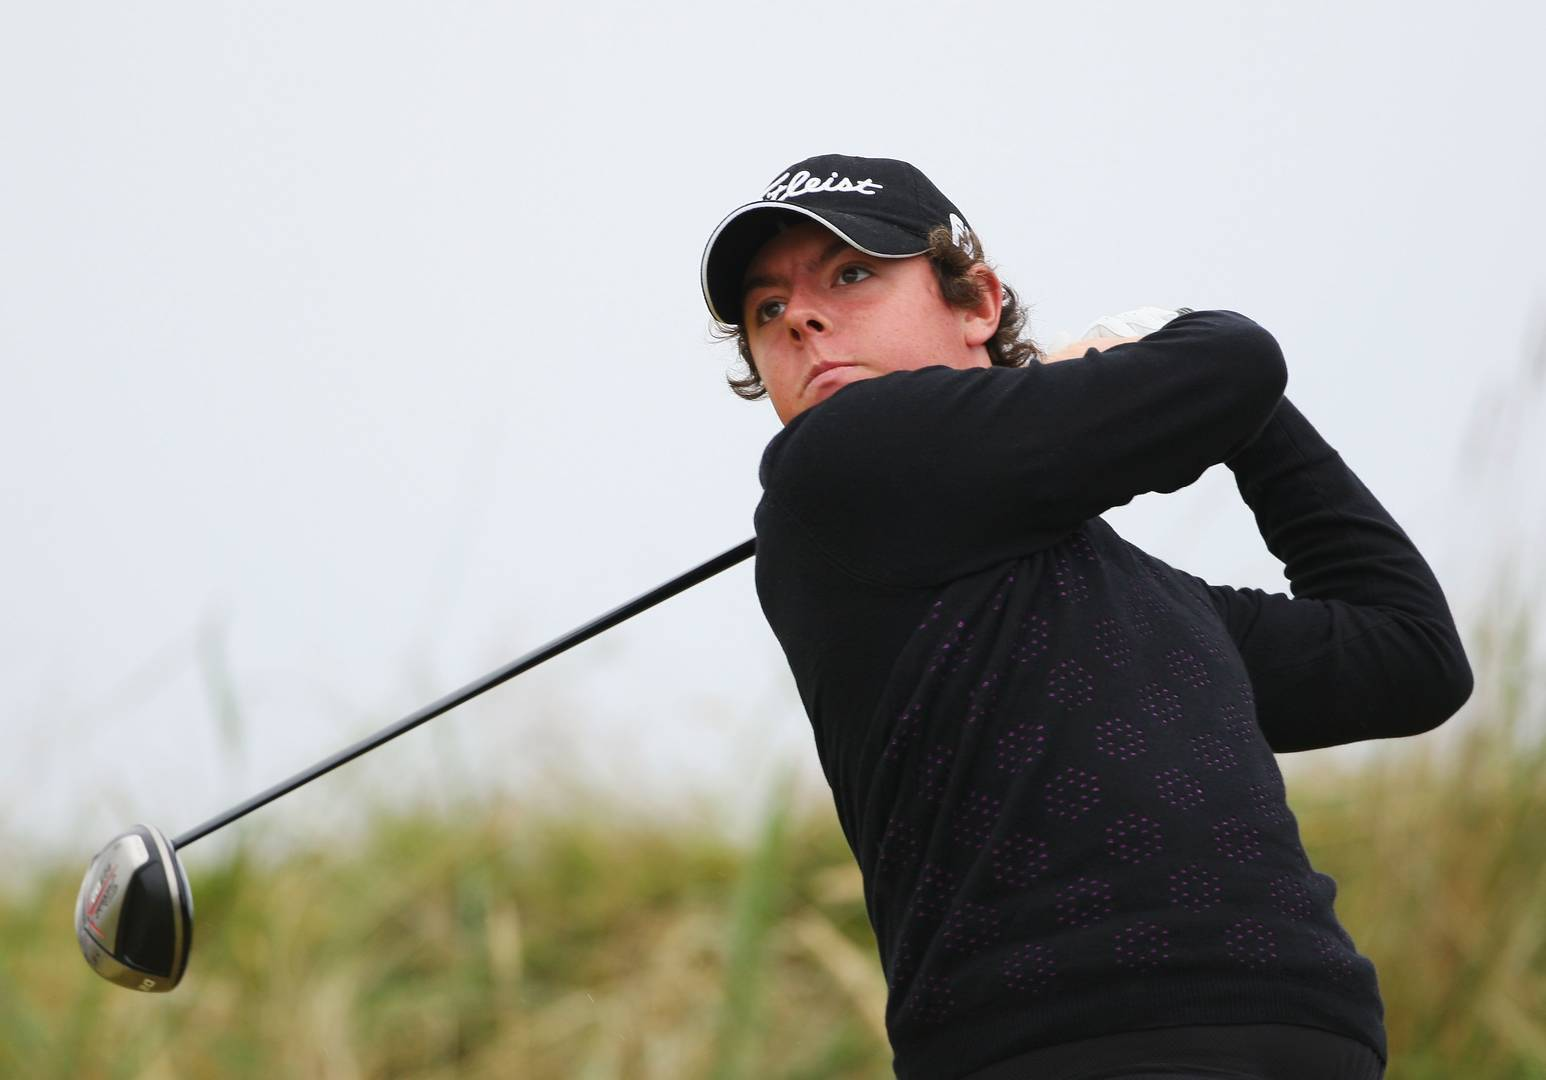 Rory Mcilroy S Player Profile For The 148th Open At Royal Portrush The Open